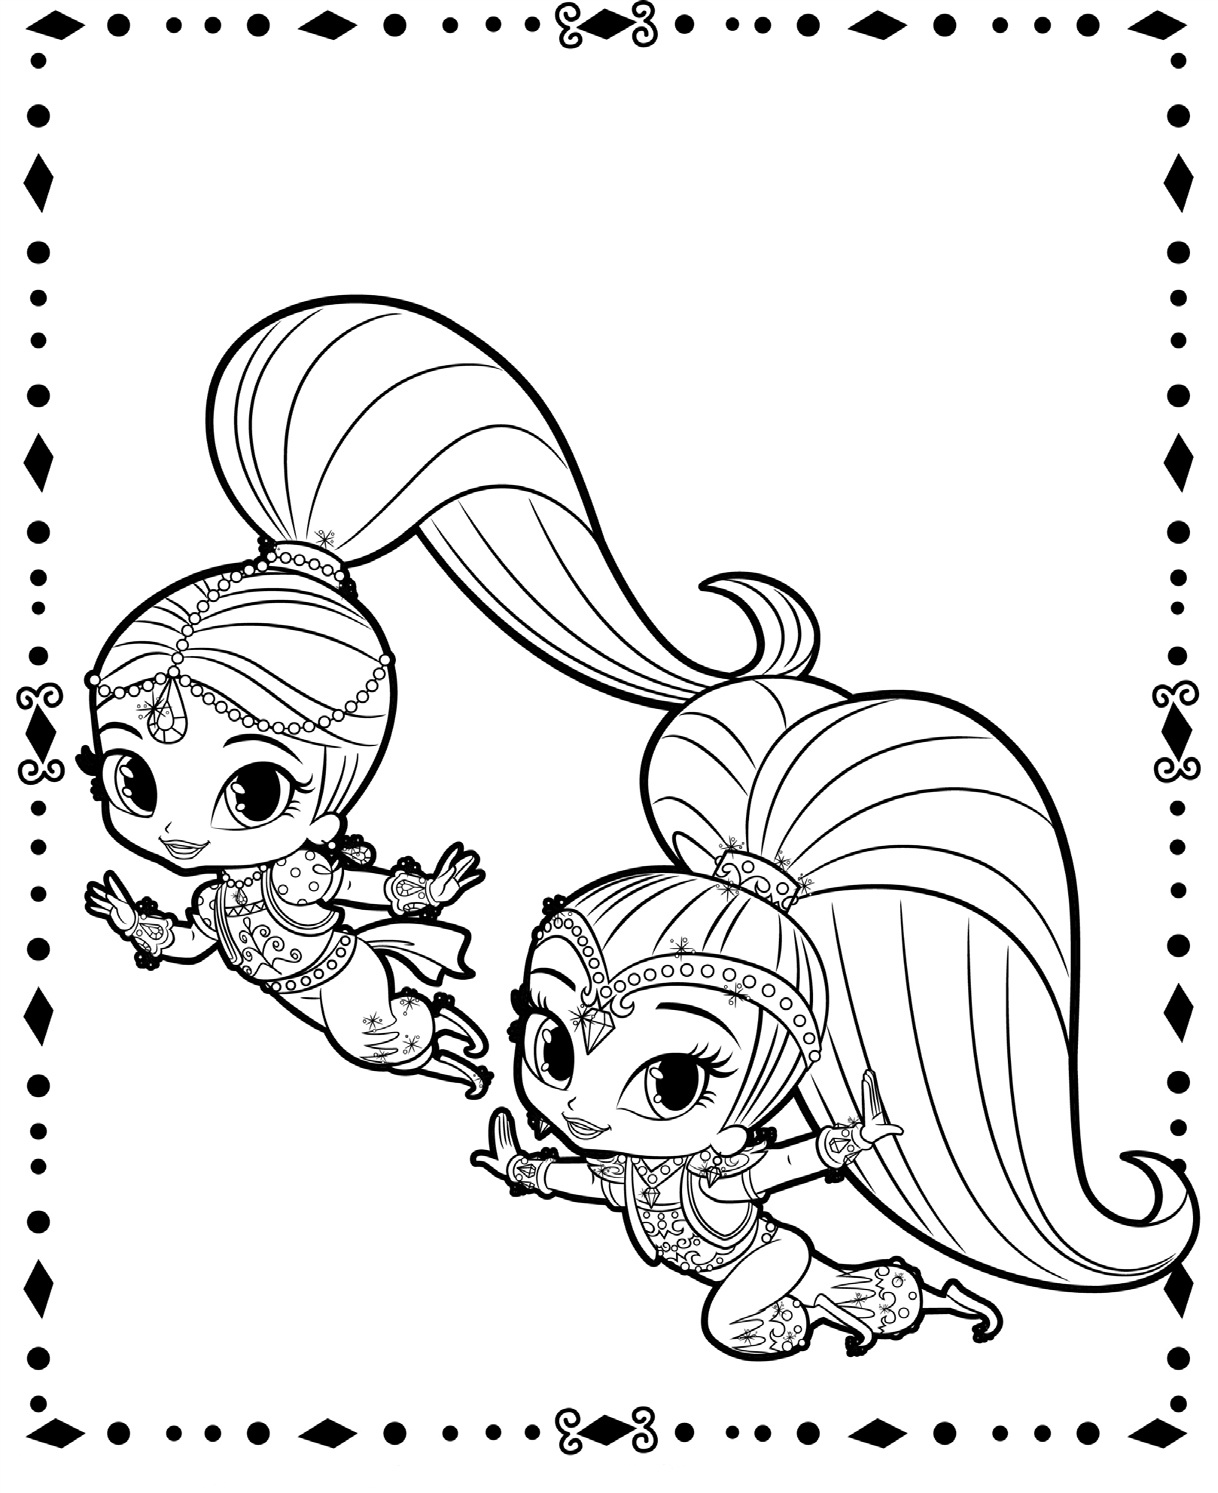 coloring shimmer and shine shimmer and shine shimmer and shine fly on the magic carpet coloring shimmer shine and